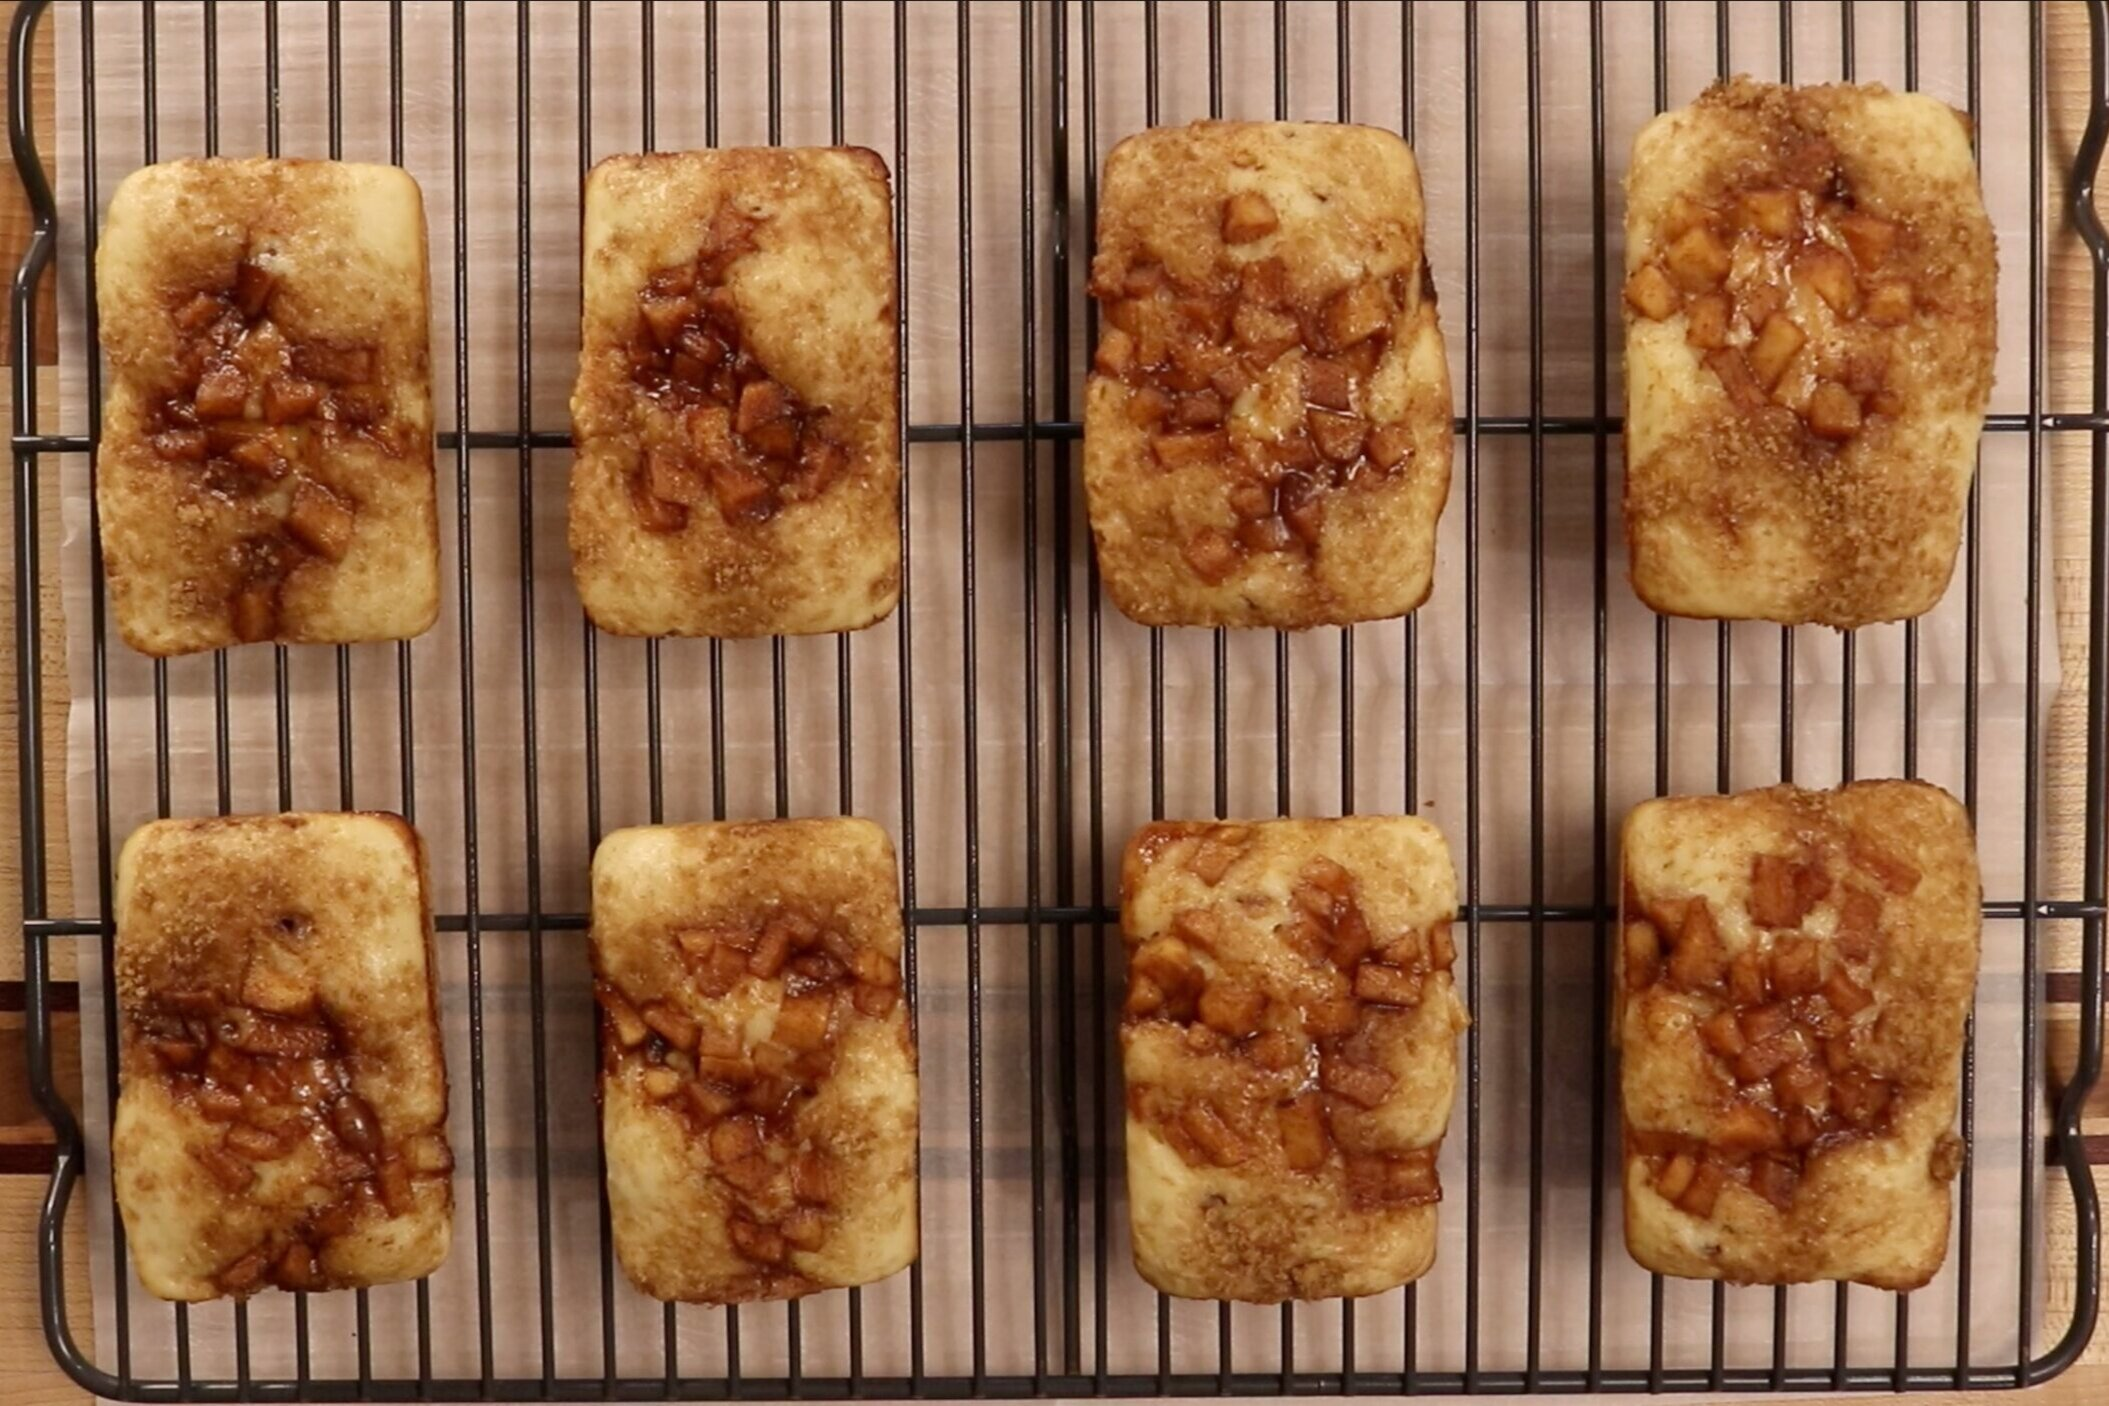 15. Remove from oven and let cool in pan for 5 minutes before releasing. Let loaves finish cooling on a wire rack. -